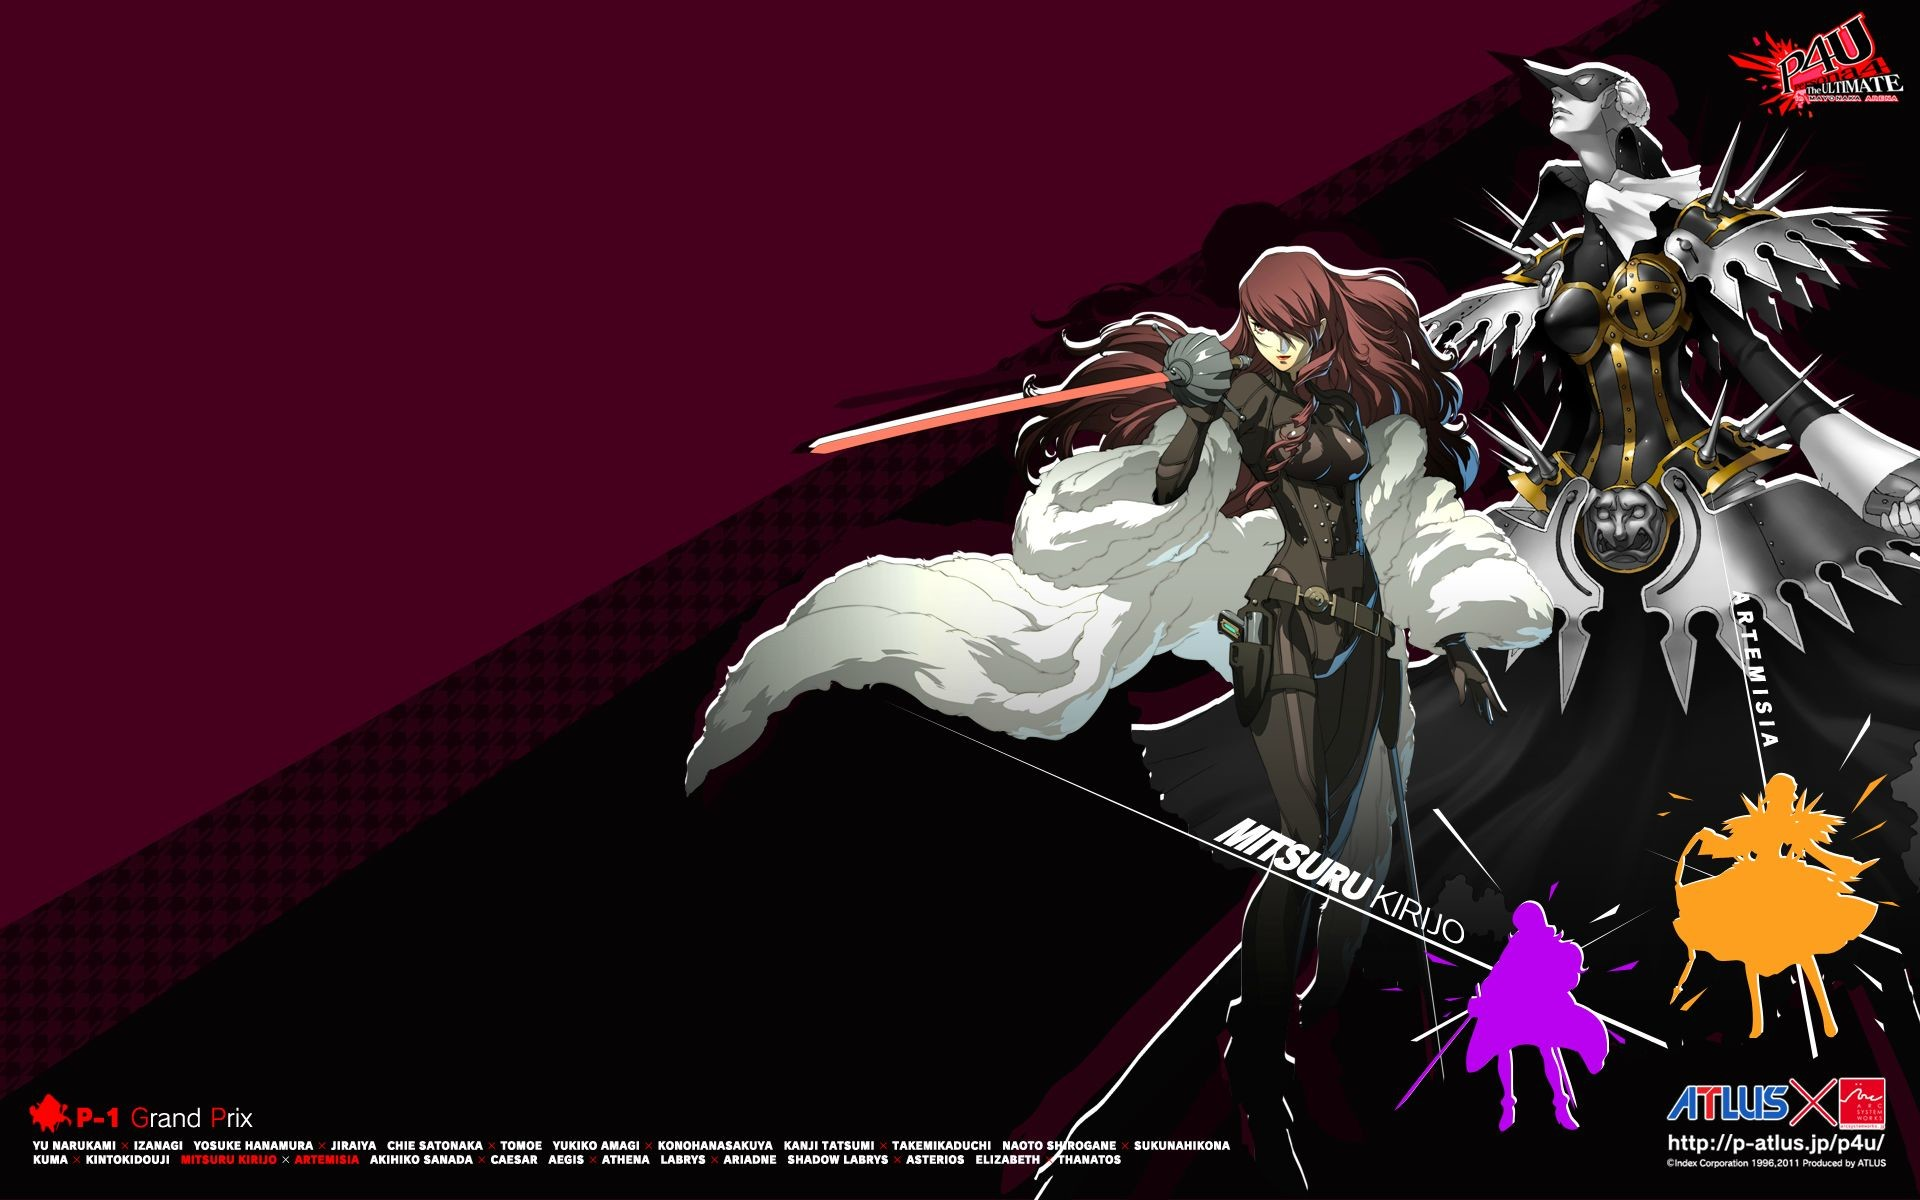 … download Persona 4: The Ultimate In Mayonaka Arena image